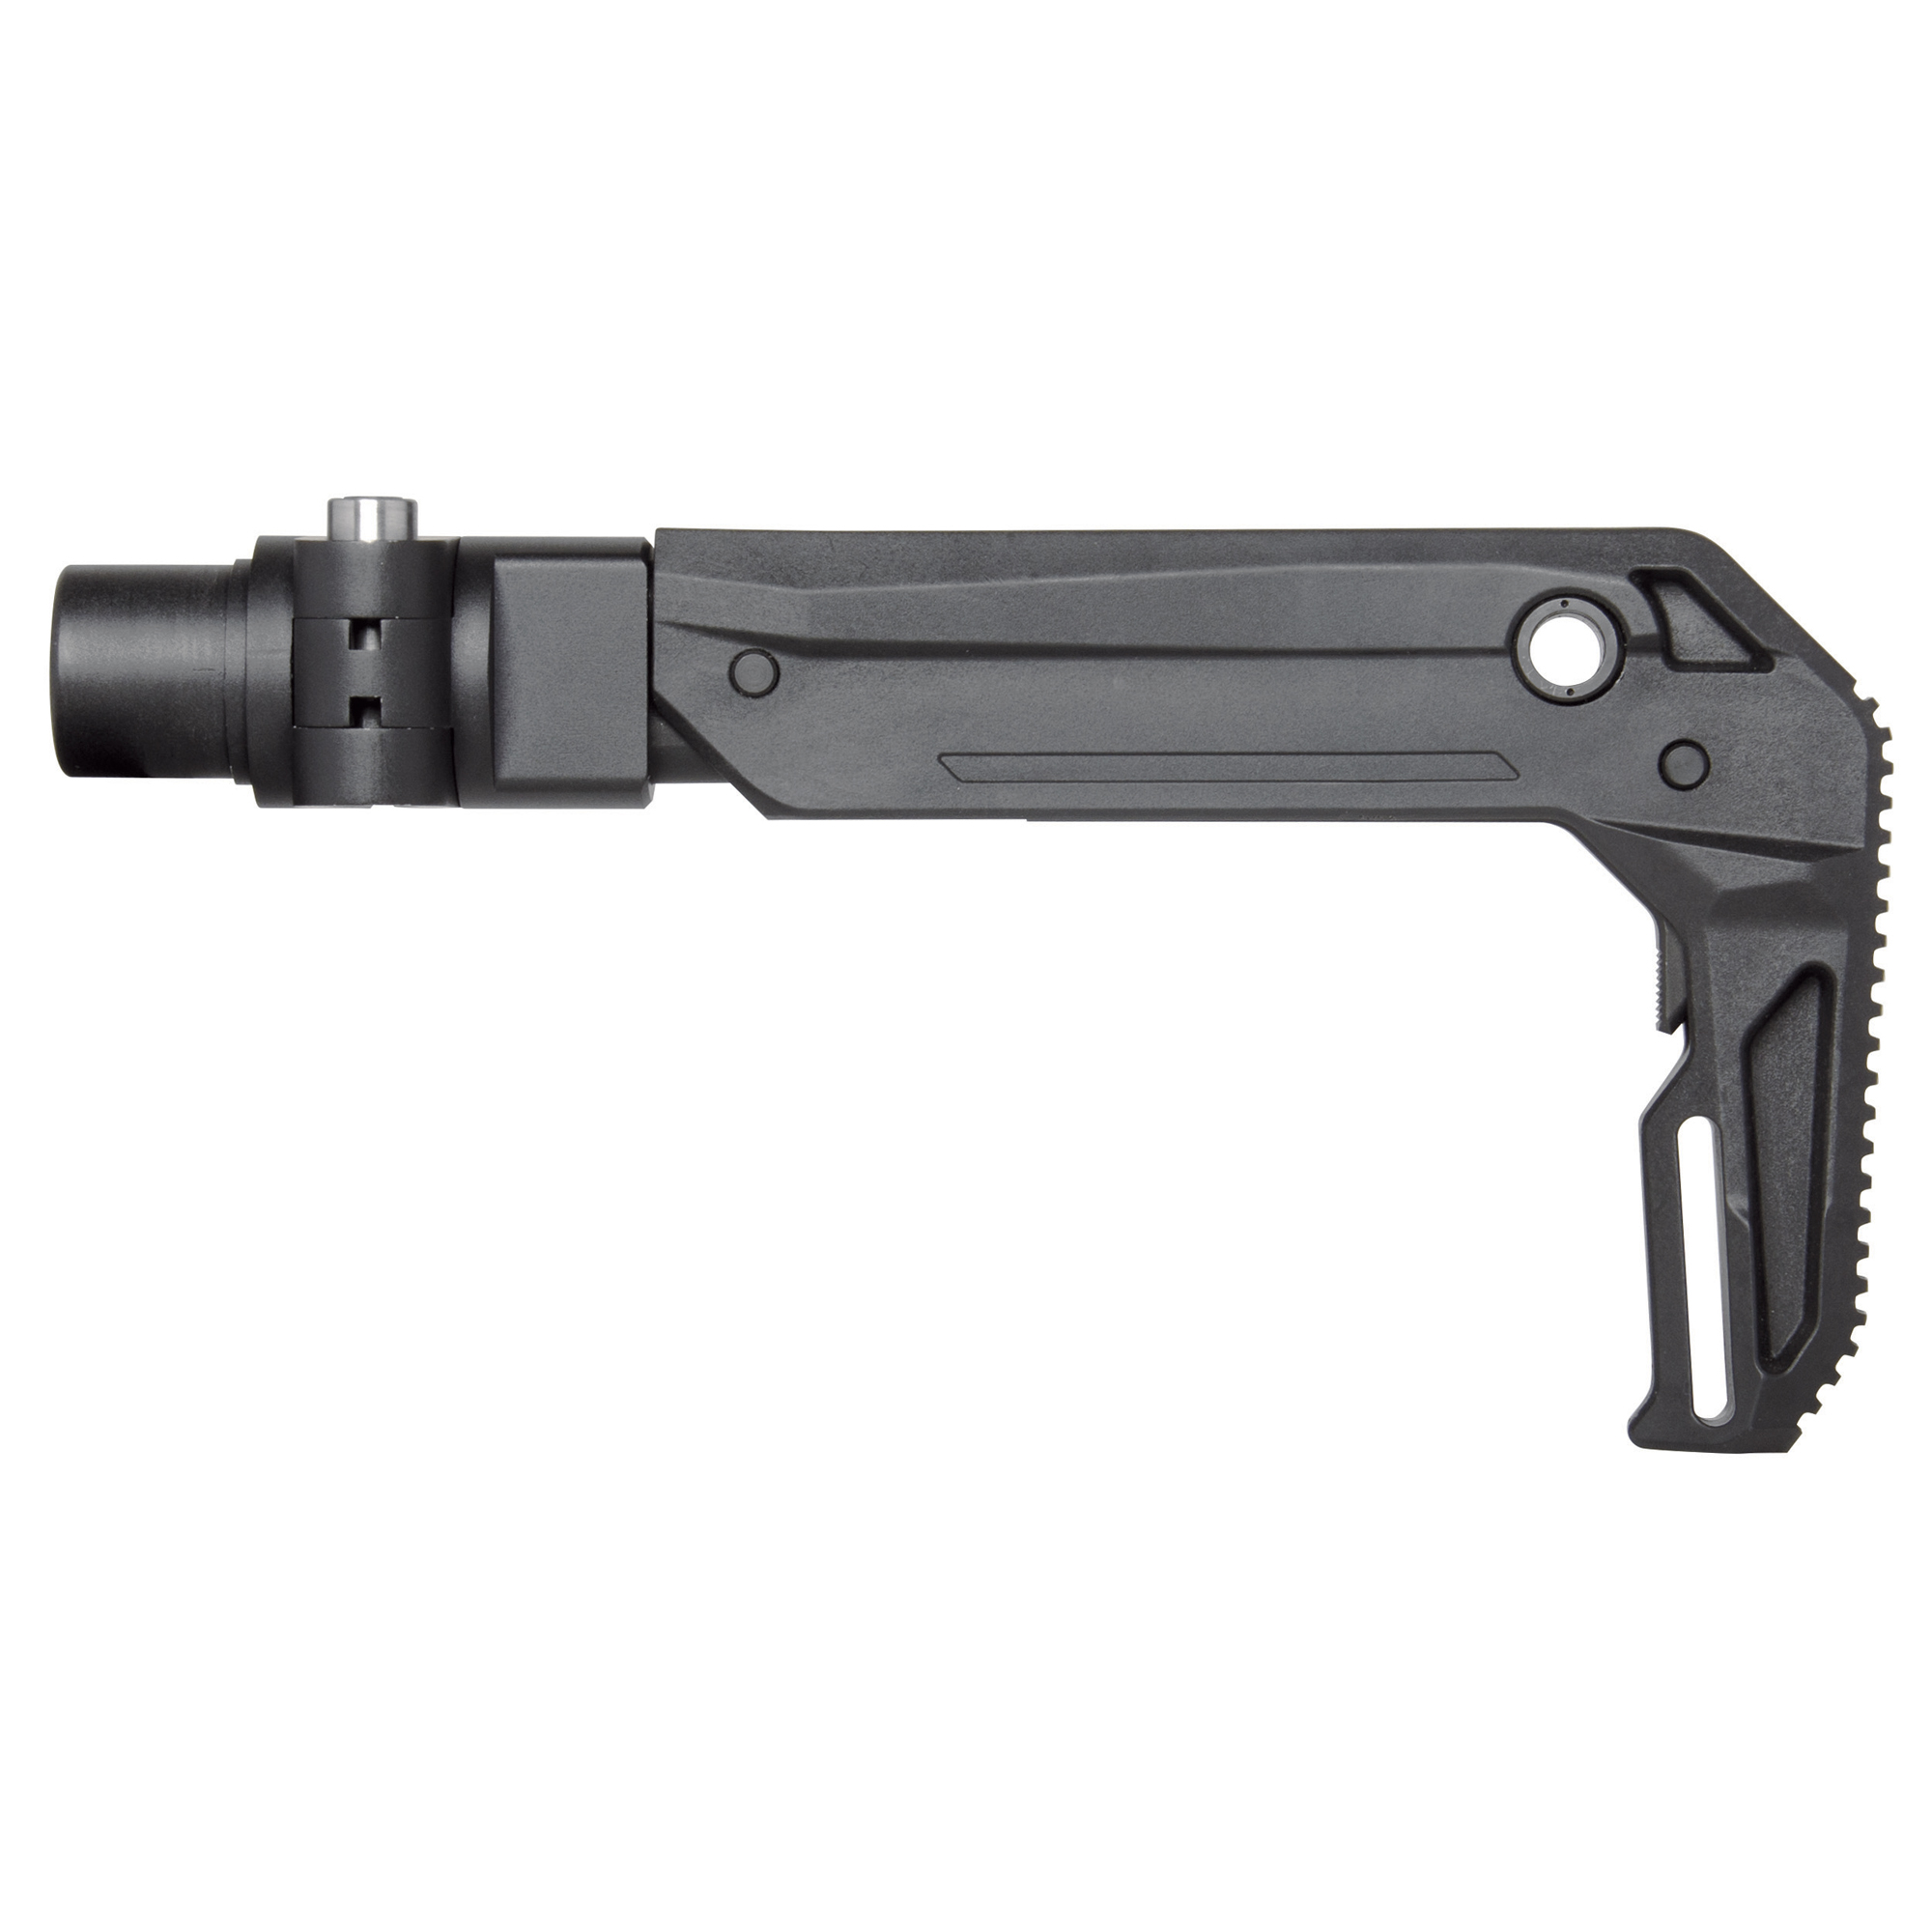 """KRISS USA's Vector Ambidextrous Folding Stock is designed for the Vector GEN II 2017. The stock is constructed of steel"""" aluminum"""" and advanced polymer composites. The KRISS Vector Ambidextrous Folding Stock secures to the upper receiver with a push button hinge that will fold to the right"""" this hinge can also be configured to fold to the left. The stock features two QD sling swivel mounts on the left and right side"""" as well as a sling loop towards the rear. In addition to folding"""" this stock is also telescopic"""" adjusting to three positions. This item is classified as a stock and will convert a Vector SDP (pistol) into a Short Barreled Rifle. This stock is only compatible with the KRISS Vector GEN II 2017 Upper Receiver."""